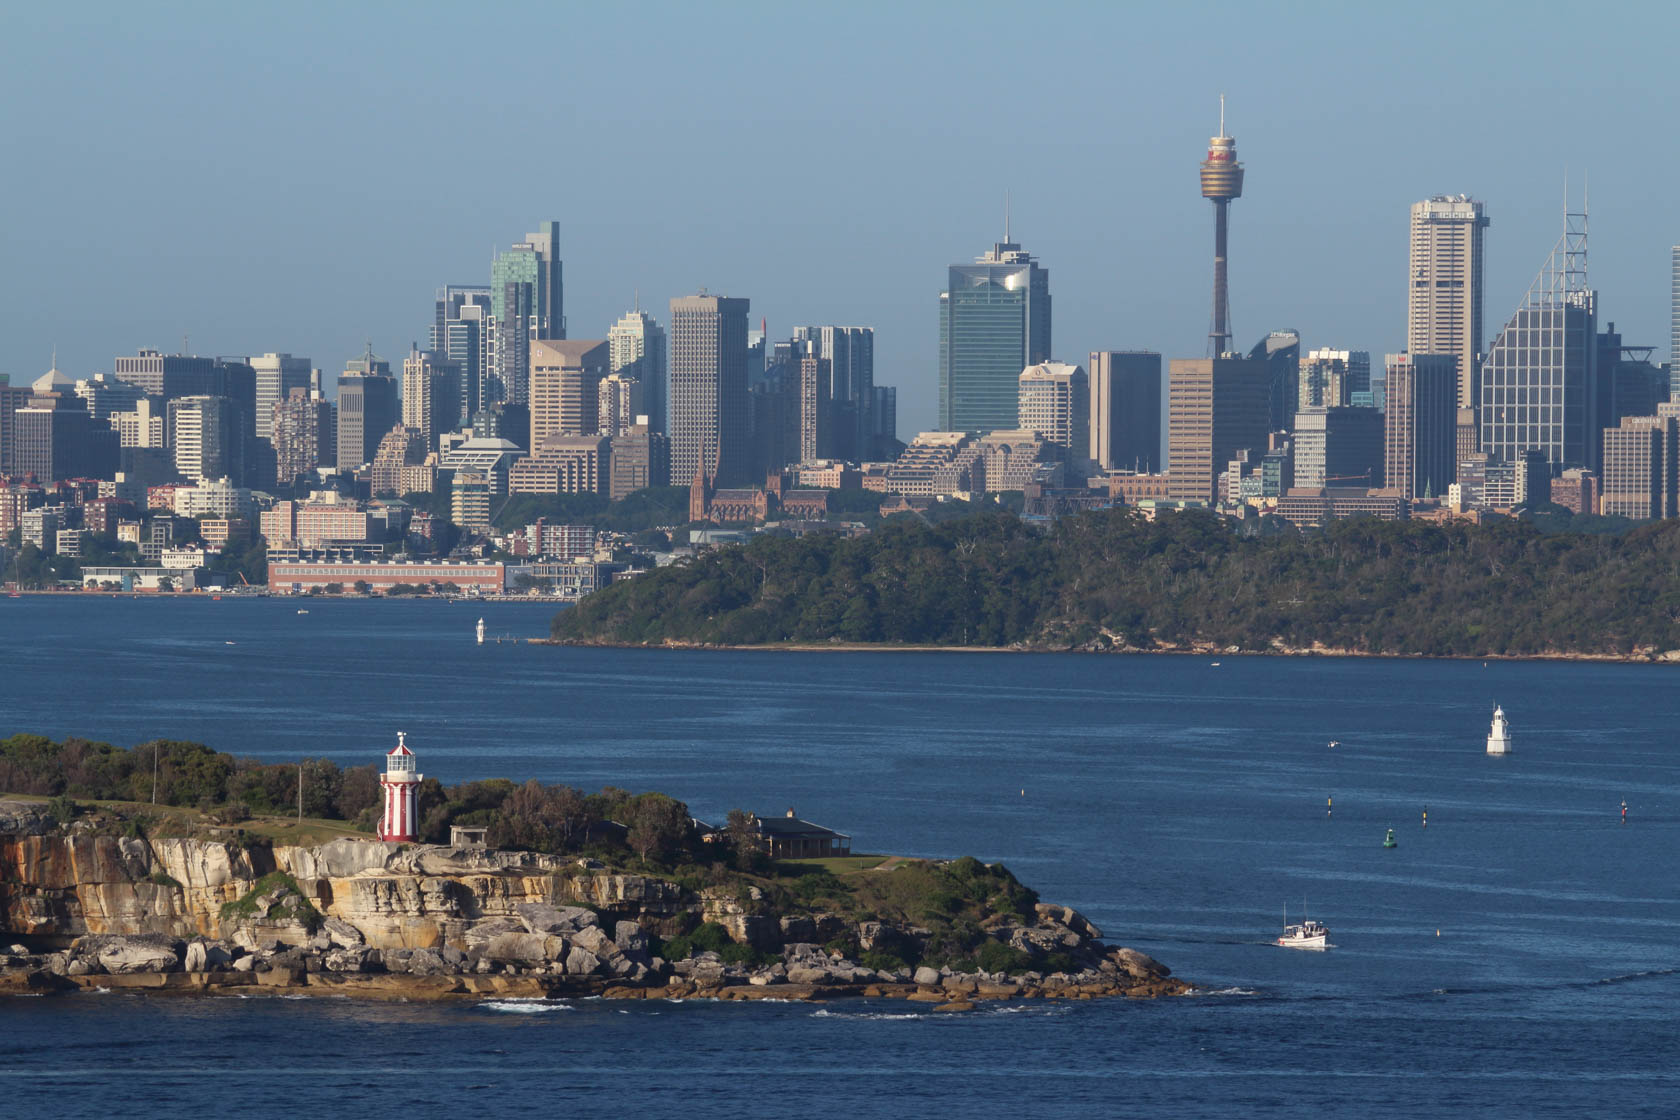 Sydney Harbour taken with Canon EF-M 55-200 IS STM lens